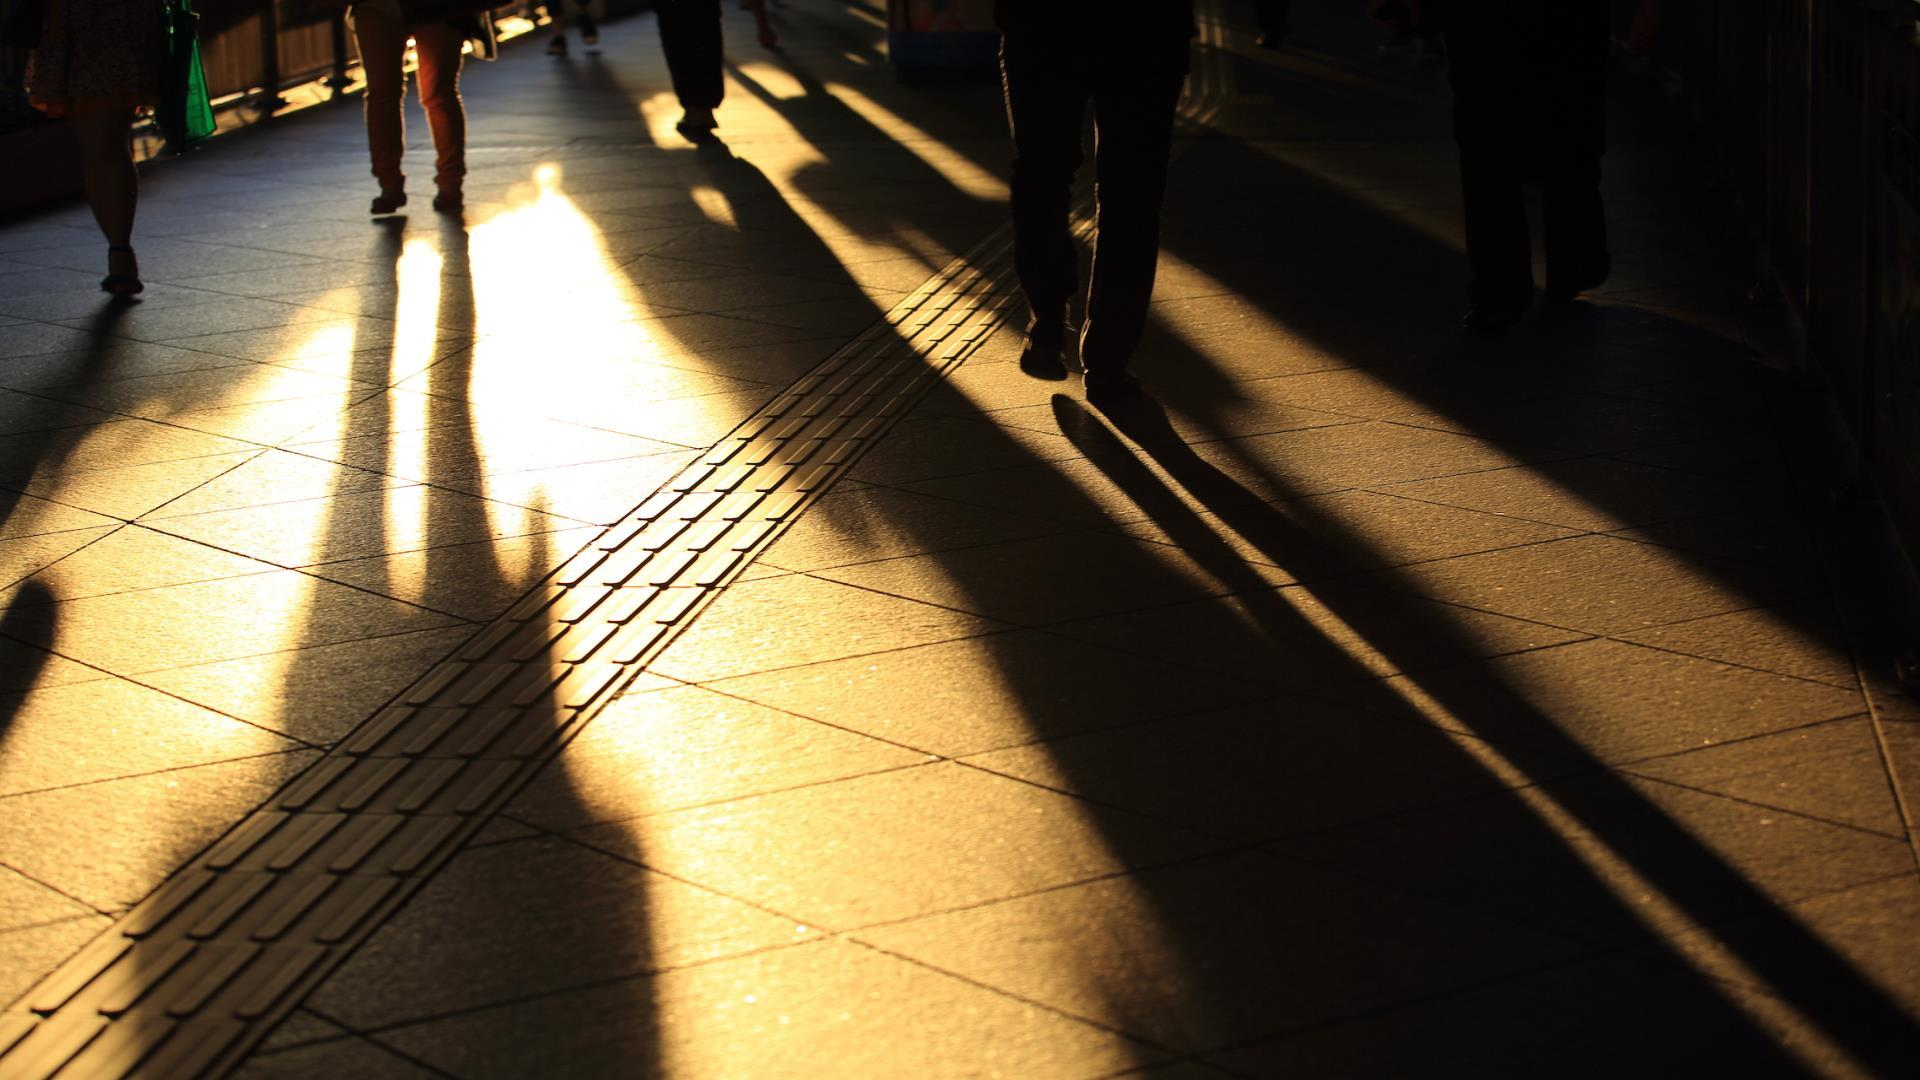 People walking in shadow